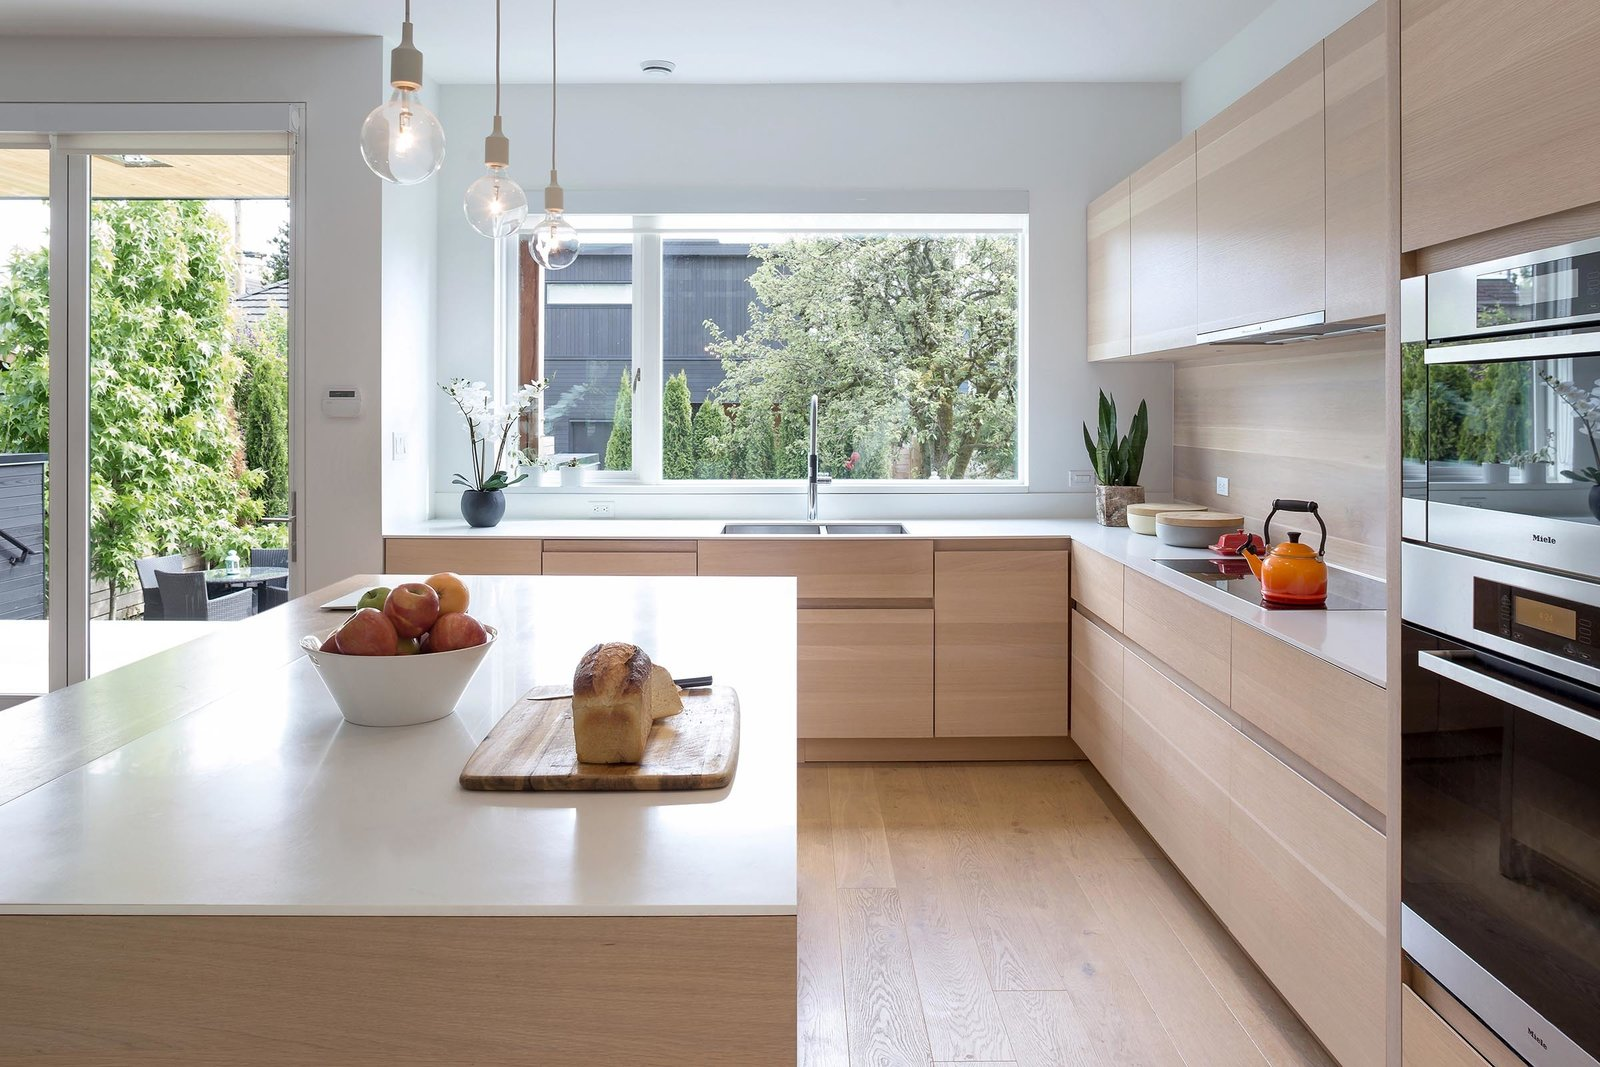 Kitchen, Engineered Quartz, Wood, Light Hardwood, Pendant, Wood, Recessed, Wall Oven, Range, Microwave, and Undermount Alternate view of kitchen which shows custom millwork and continuous wood backsplash which creates an effortlessly seamless effect.  Best Kitchen Wall Oven Wood Undermount Recessed Engineered Quartz Light Hardwood Photos from Custom Millwork and Bright Interiors Star in an Elegant Vancouver Home